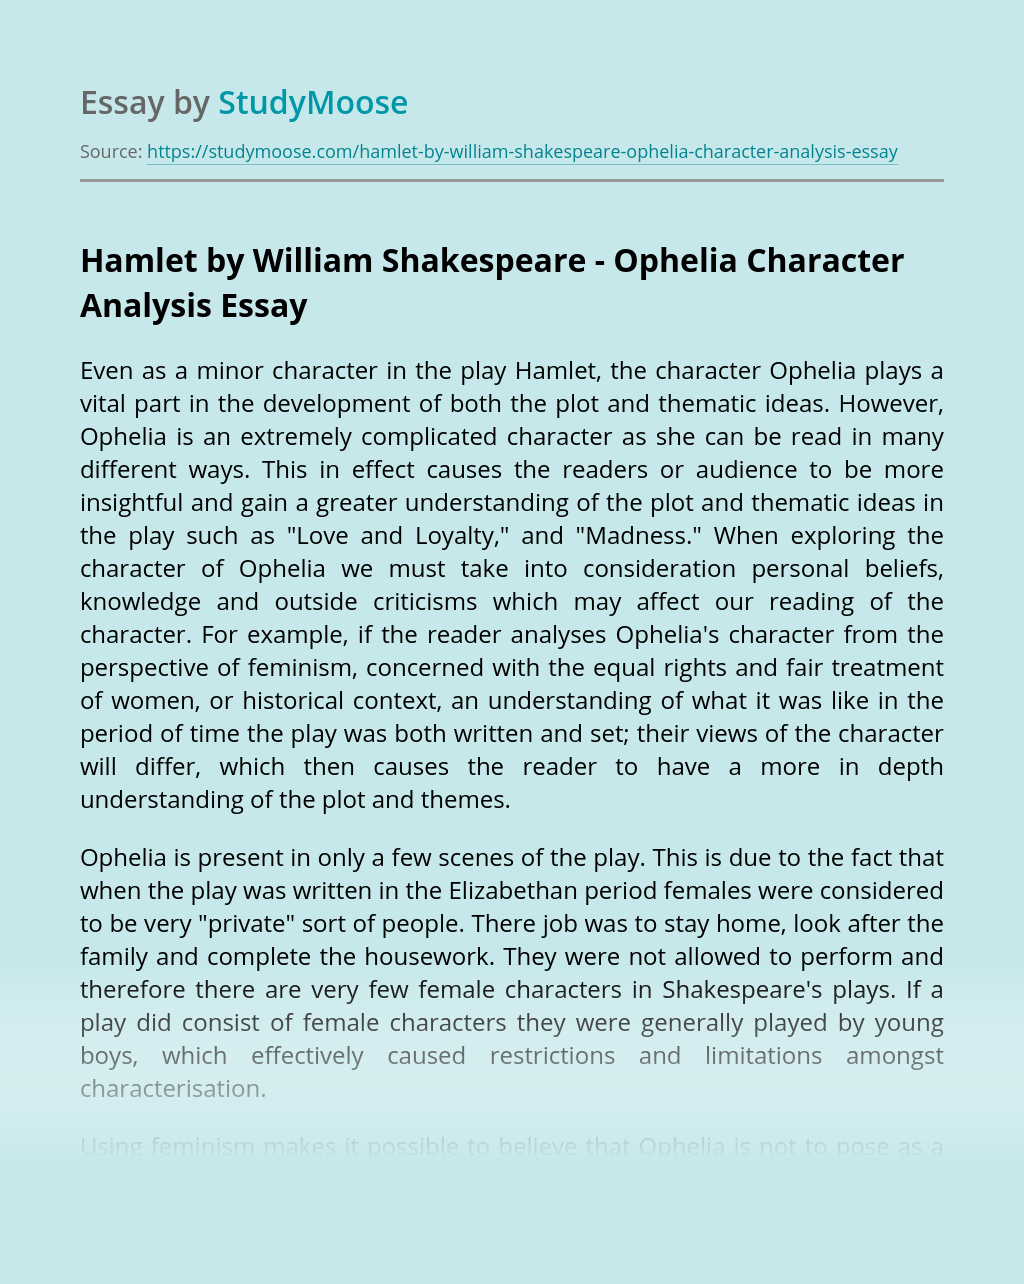 Hamlet by William Shakespeare - Ophelia Character Analysis